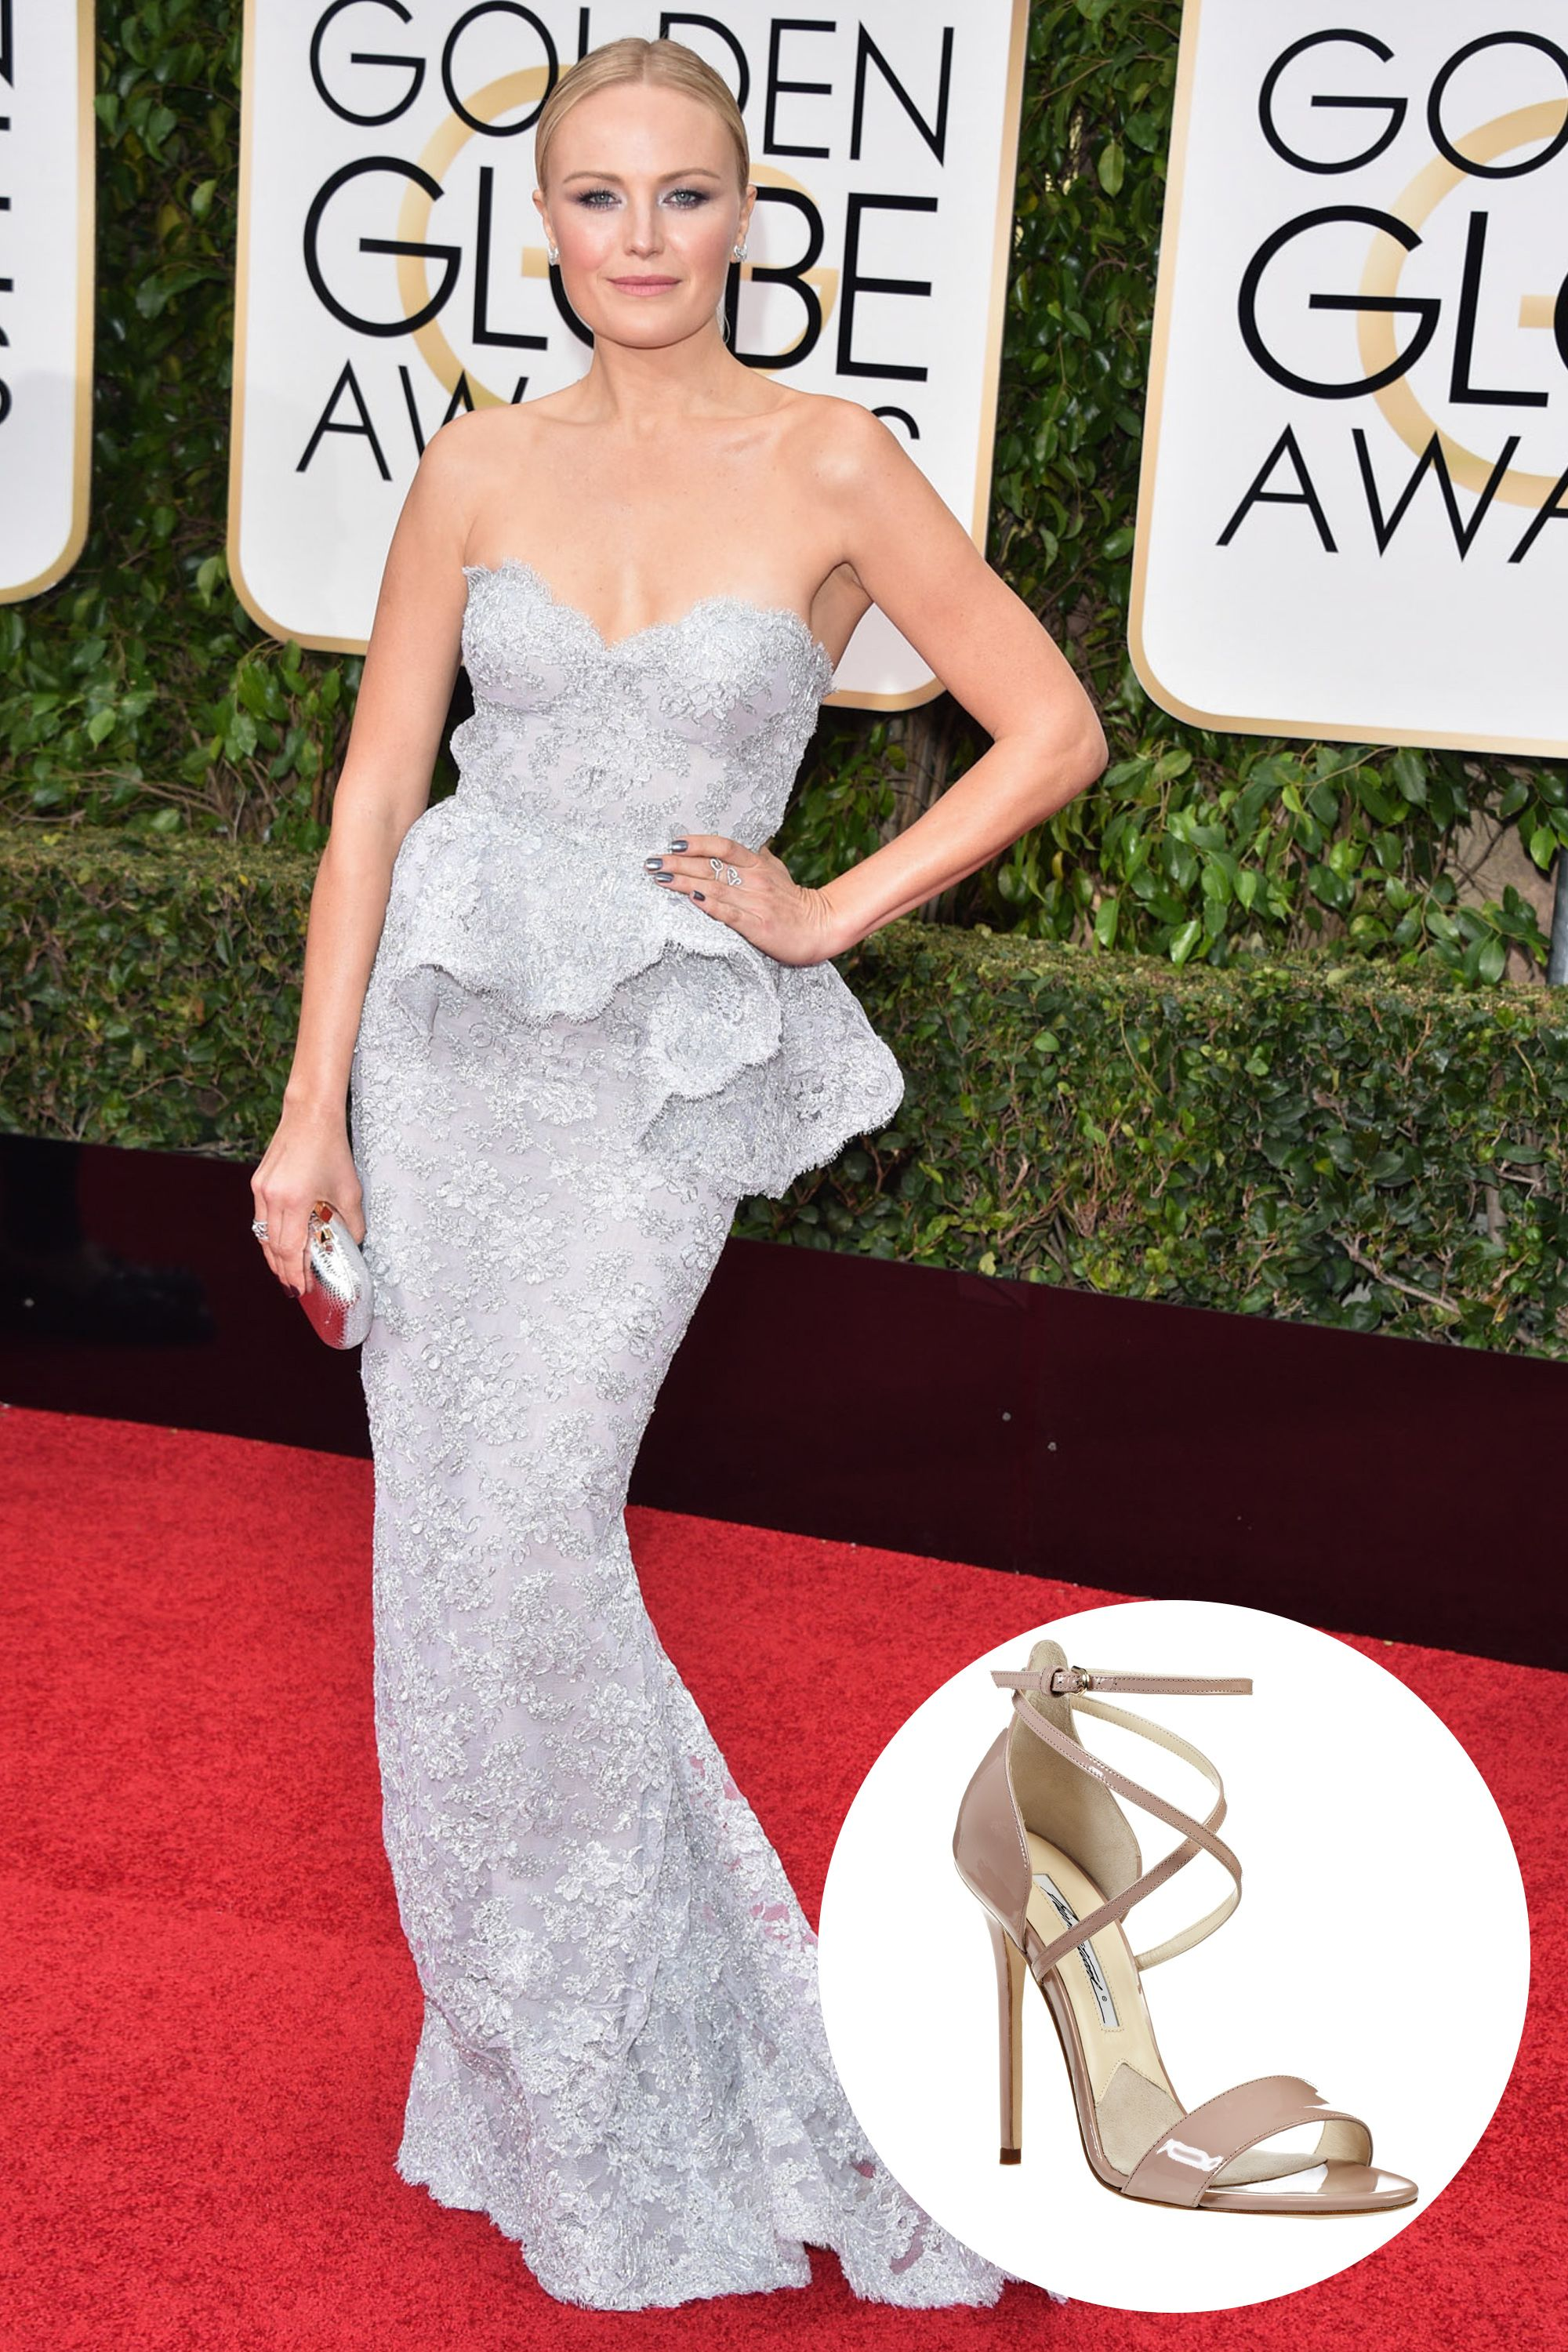 04444a657 What Shoes Celebrities Wore on the Golden Globes 2016 Red Carpet -  Celebrity Comfortable Party Shoes